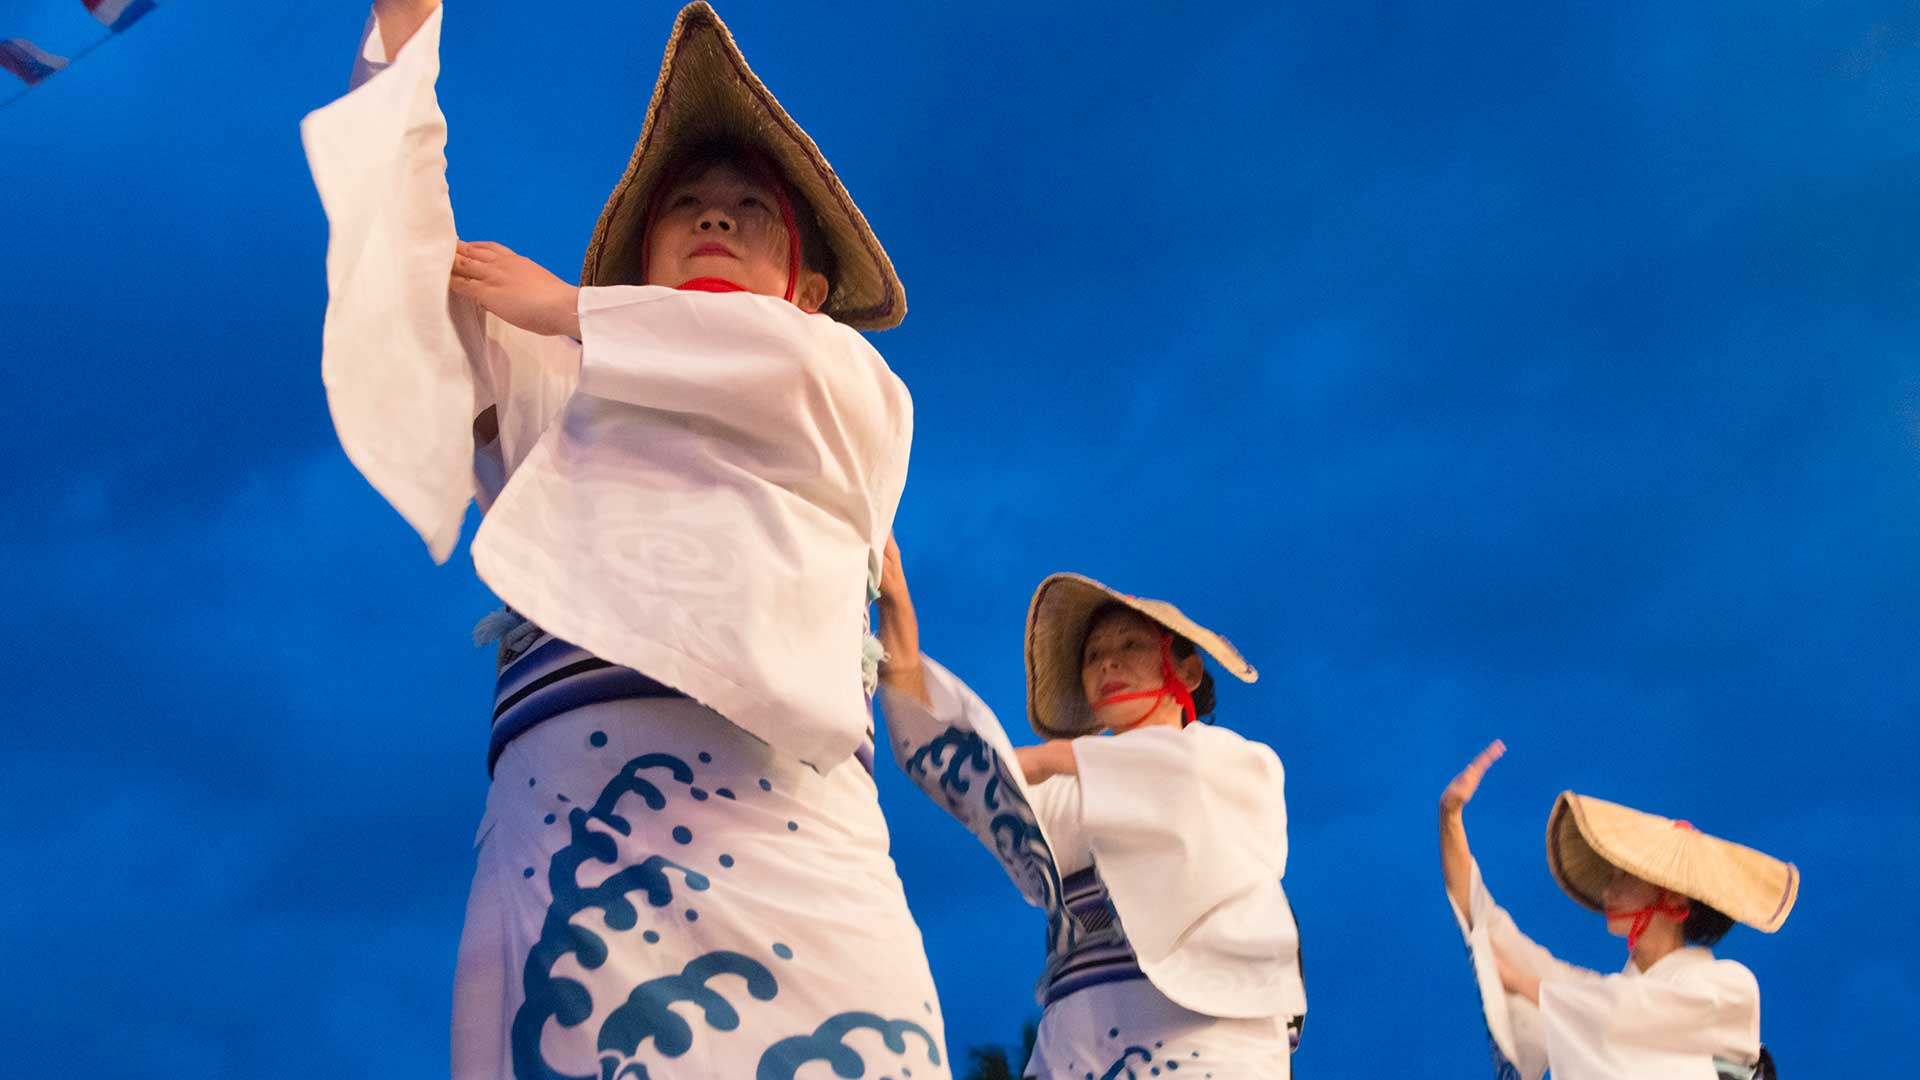 Ama women in traditional clothing and hat dancing at Shirahama Ama Festival